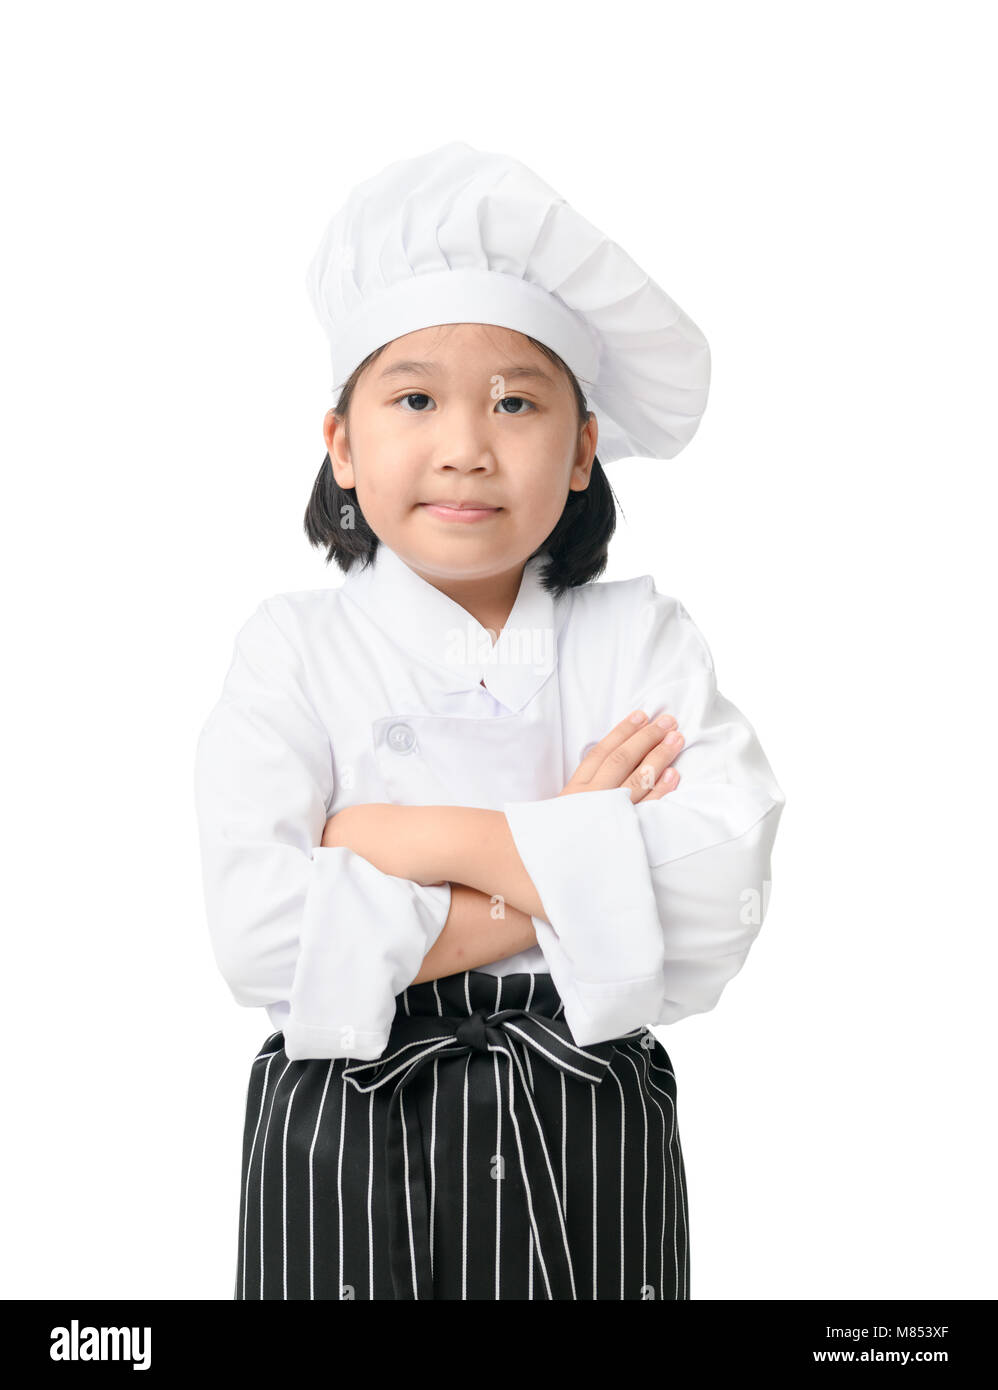 cook hat stock photos